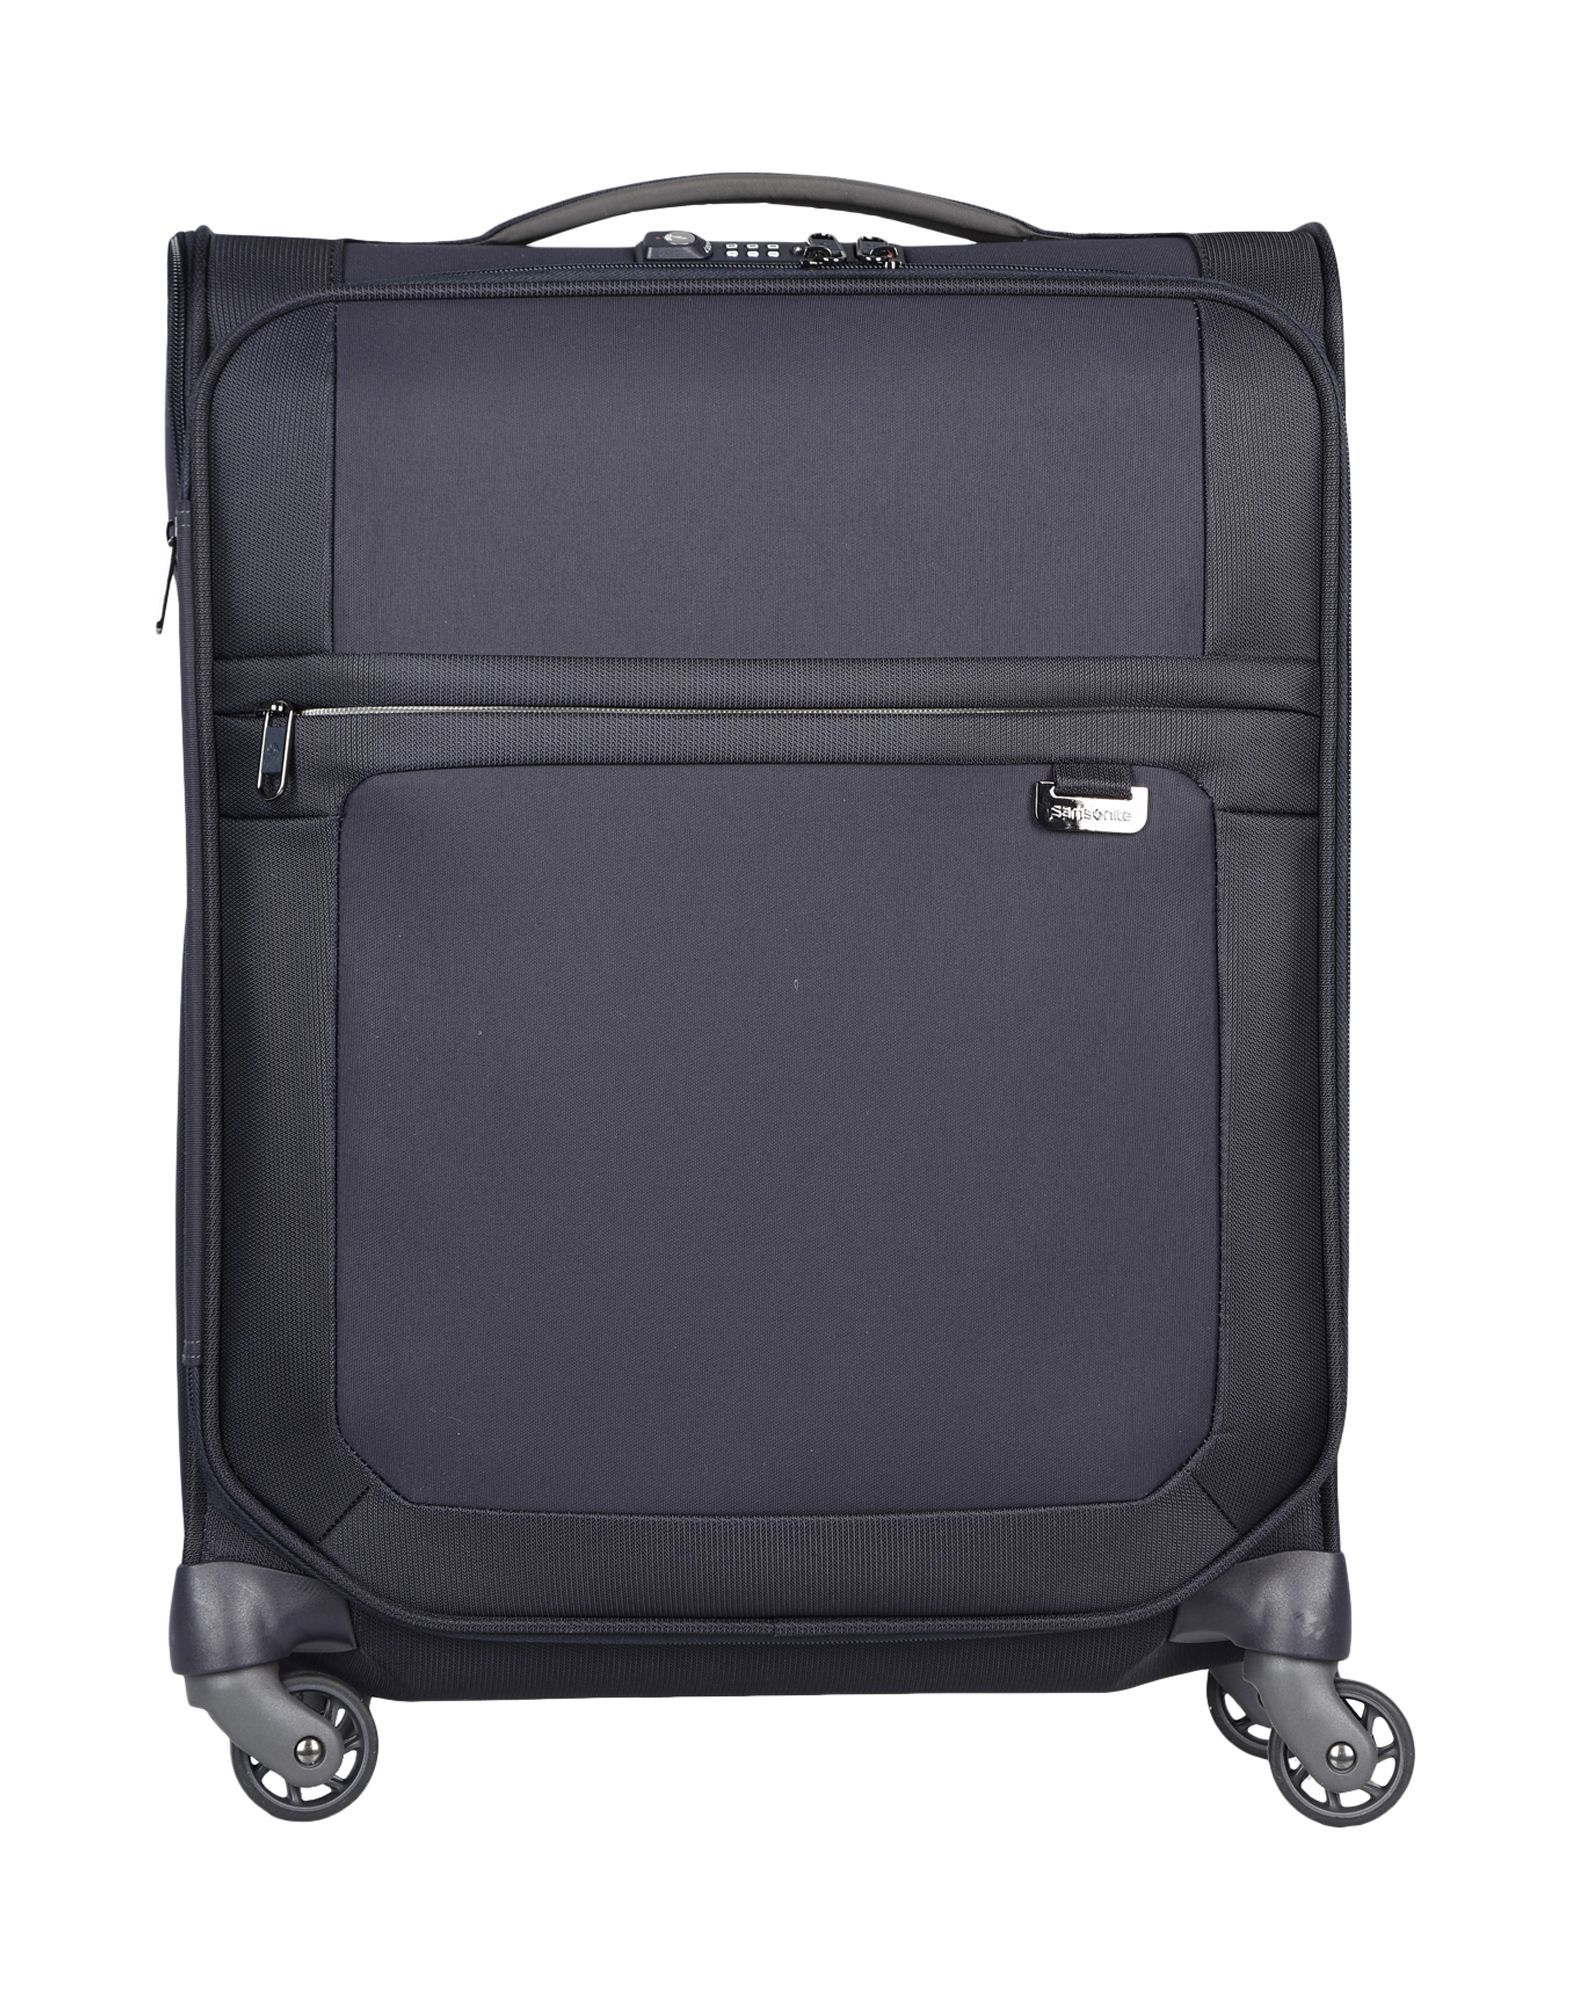 Trolley E Valigie Samsonite Uplight Spinnetr 55/20 - Uomo - Acquista online su